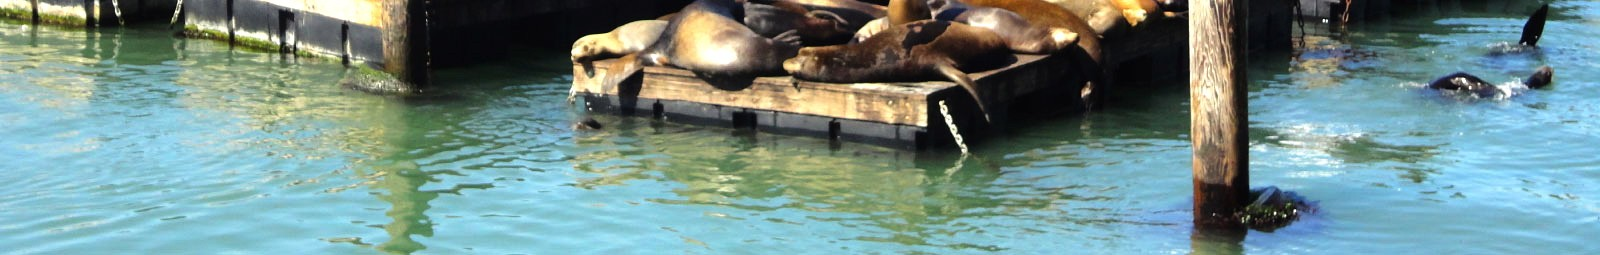 Sea lions resting on the dock at Fisherman's Wharf.